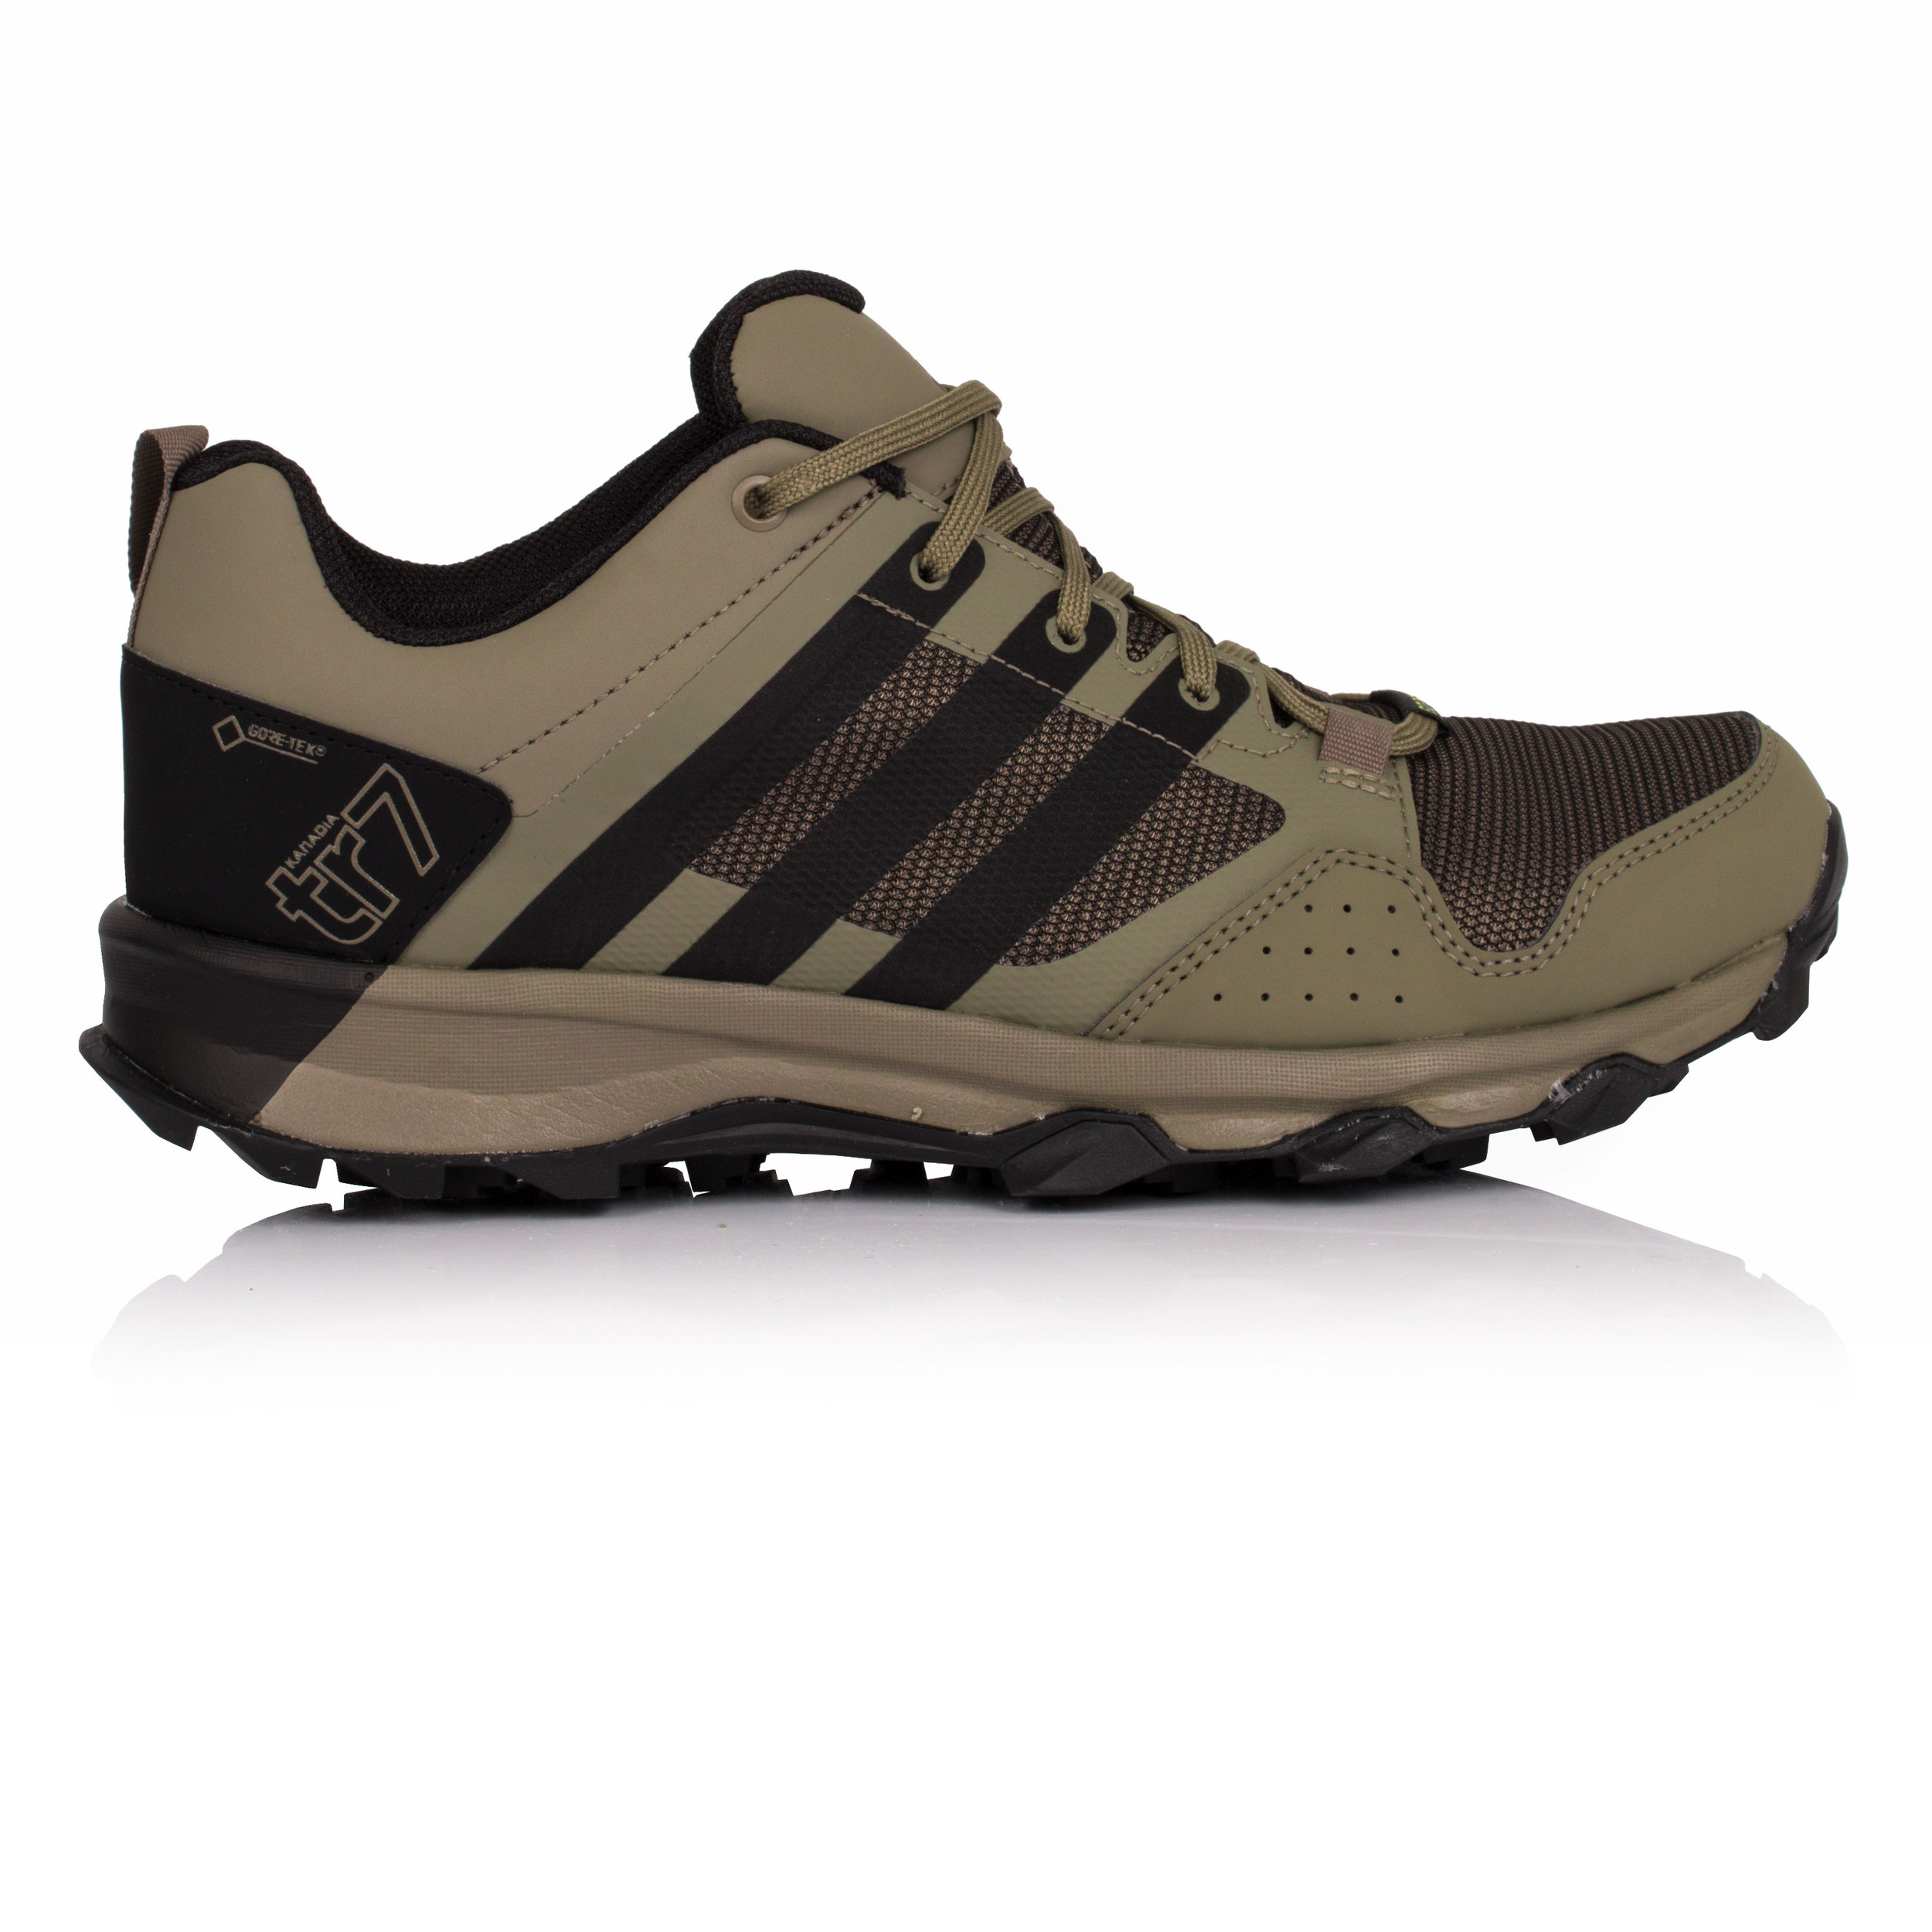 sabor dulce prisión esposa  Adidas Kanadia 7 TR Mens Green Gore Tex Running Sports Shoes Trainers Pumps  | eBay